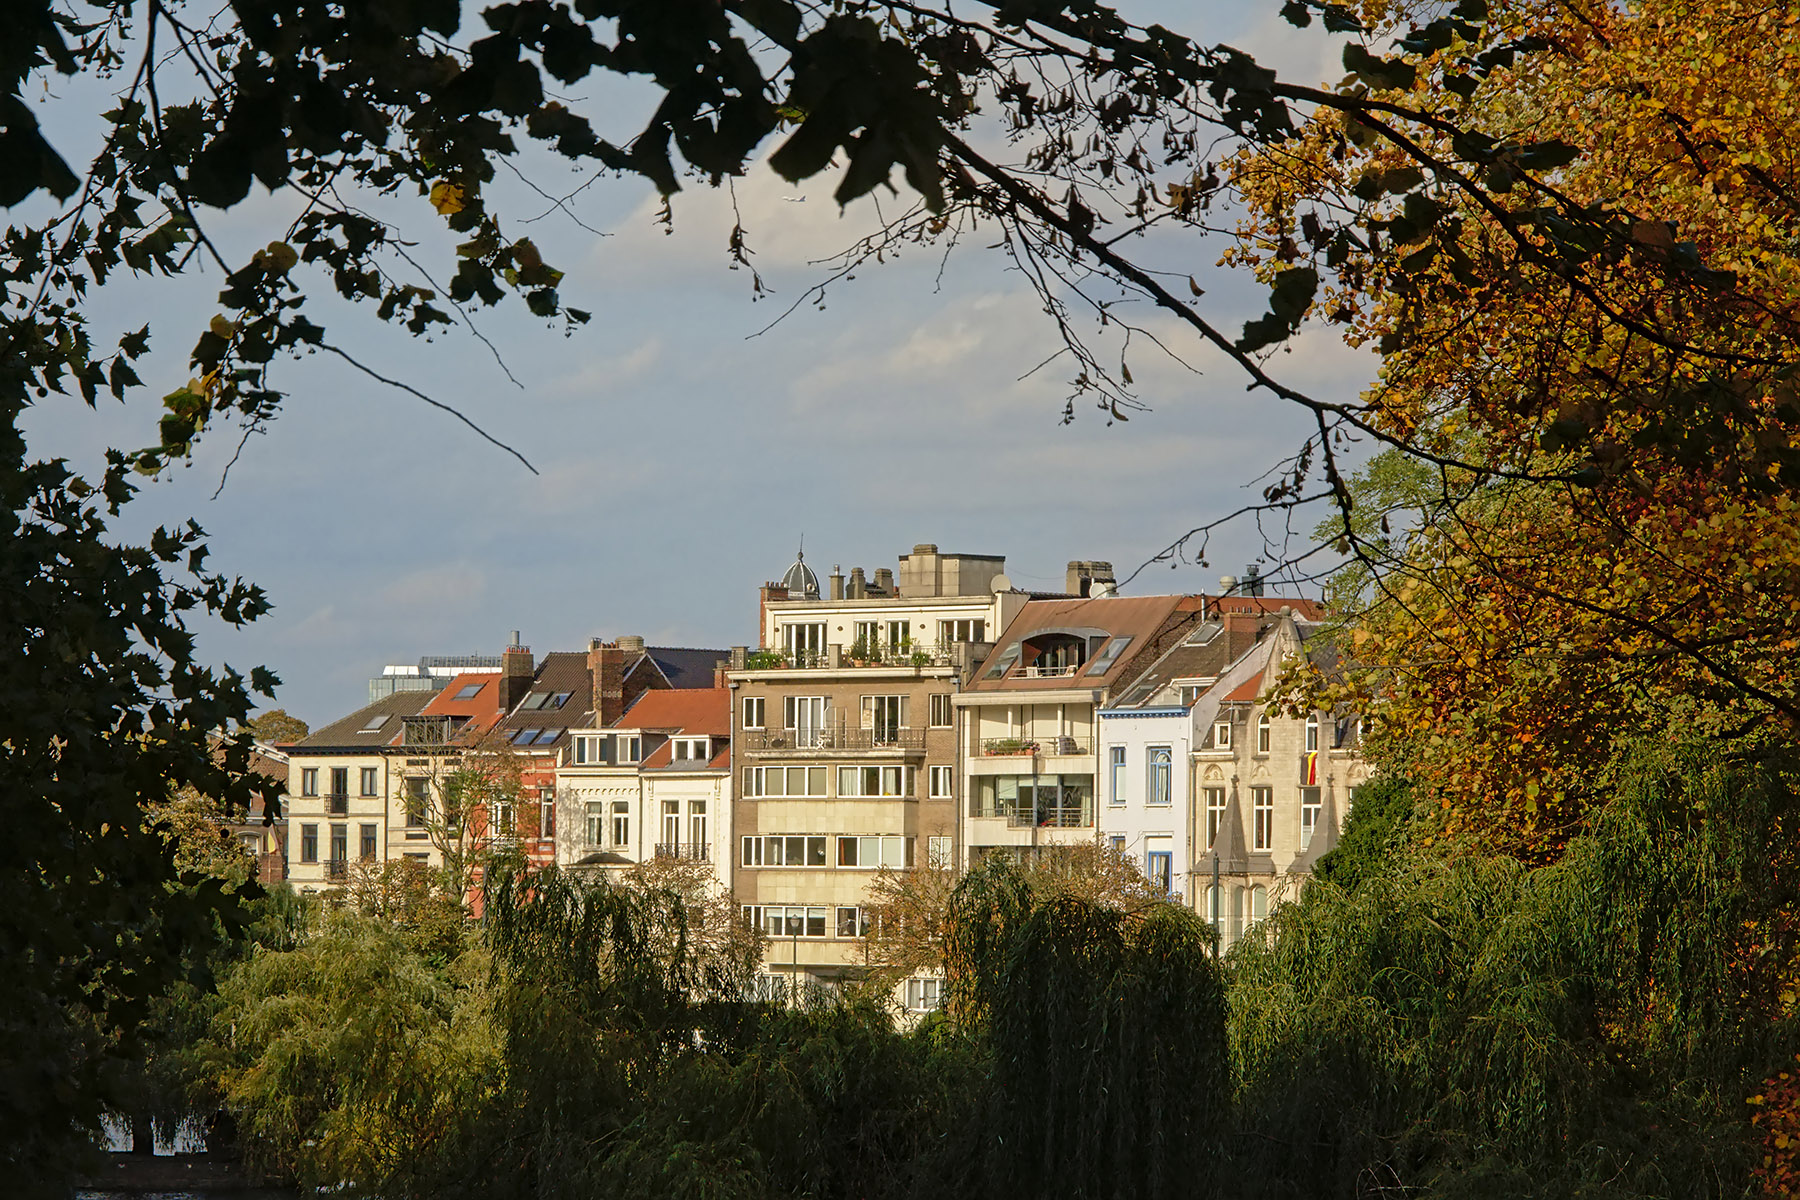 Typical houses in Ixelles